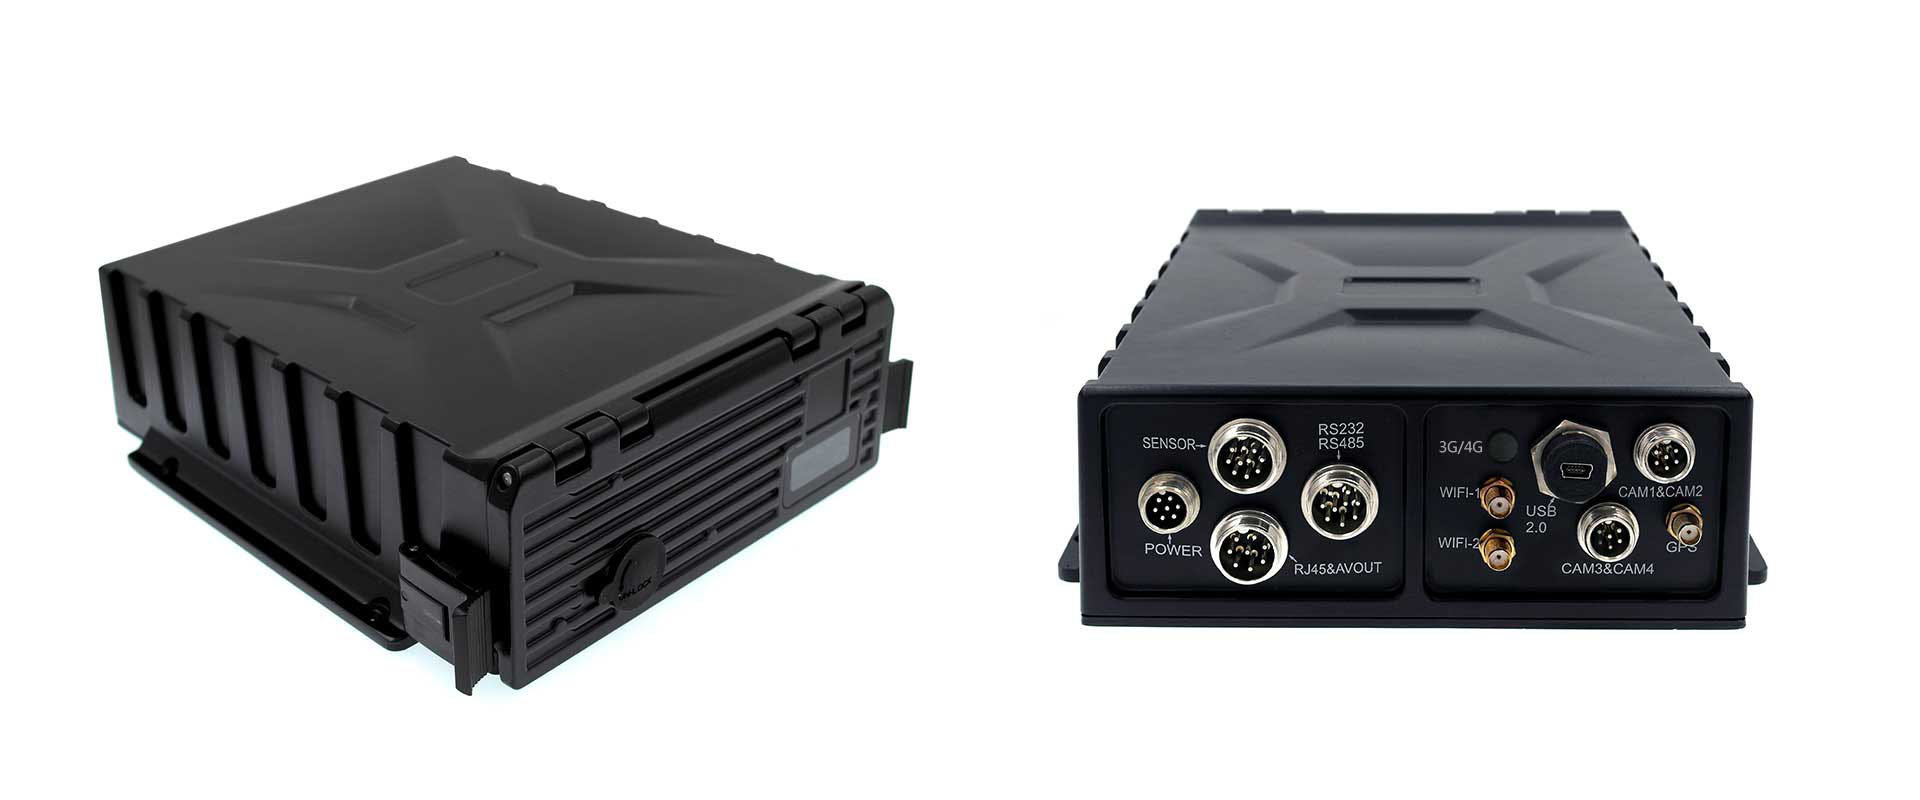 vehicle Mdvr Ip67 1080P HD high quality 4 channel Mobile Dvr with GPS WiFi JH6S-4HD-GNW Picture2